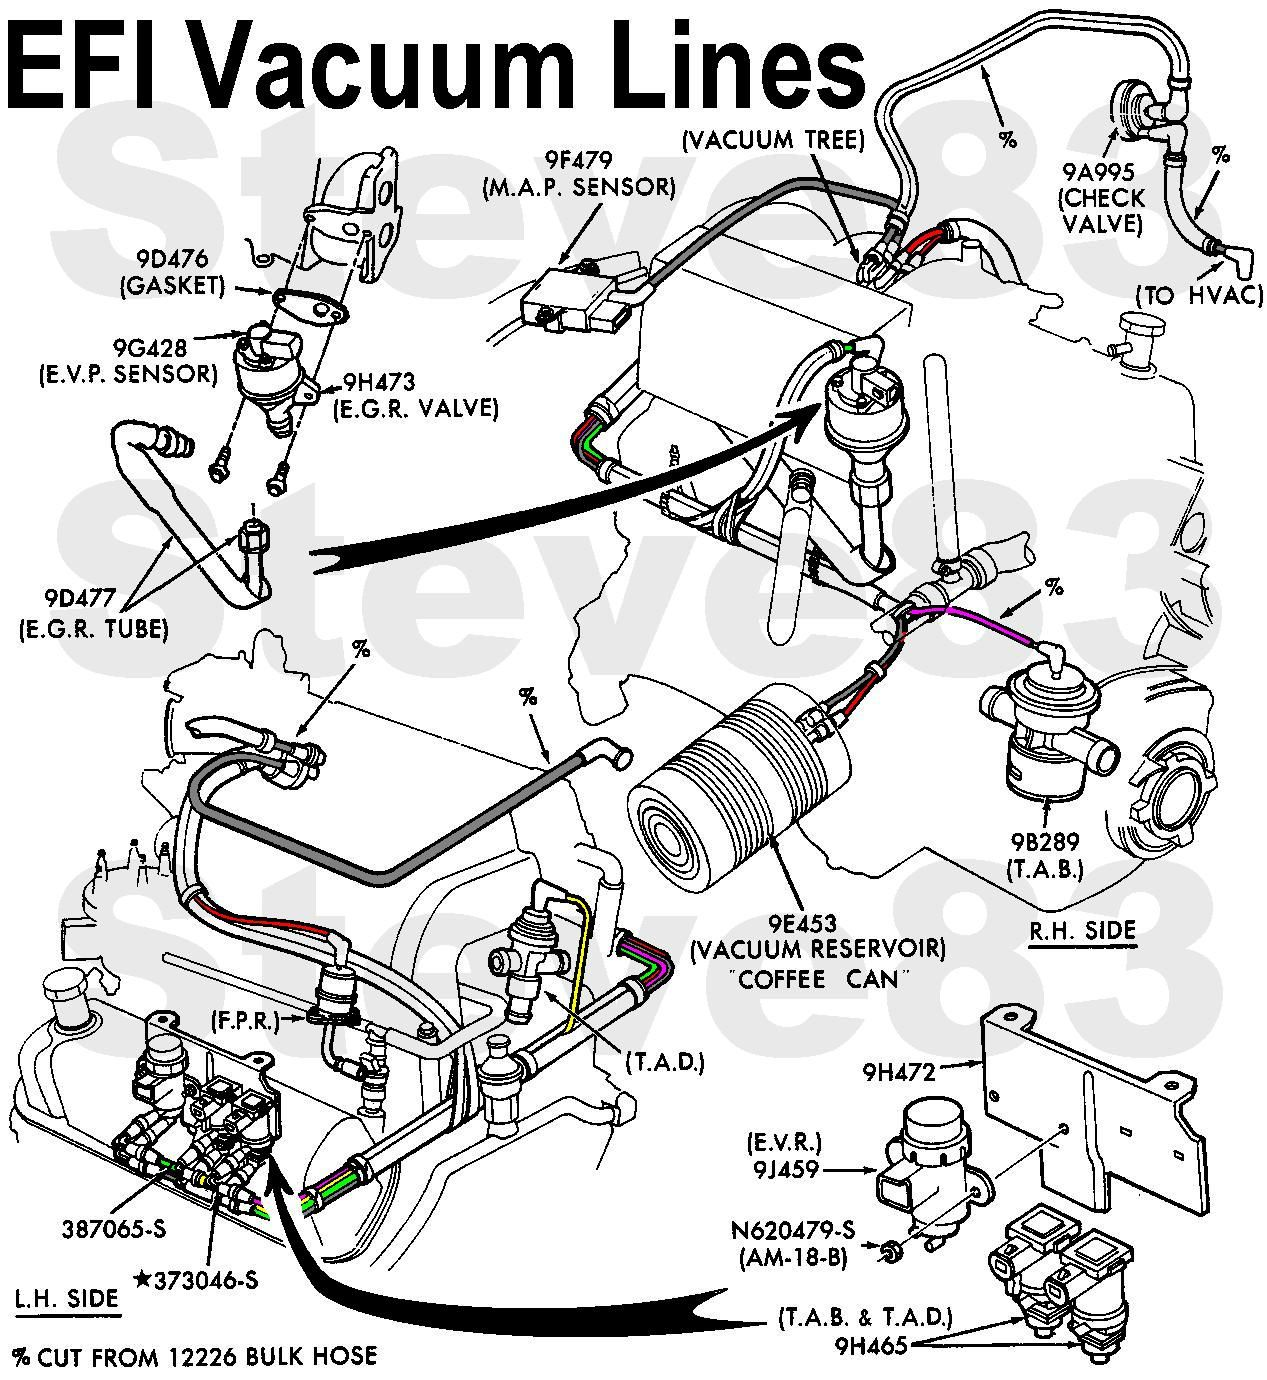 engine bay schematic showing major electrical ground points for 4 0l jeep cherokee engines jeep jeep jeep cherokee 2001 jeep cherokee [ 1267 x 1380 Pixel ]